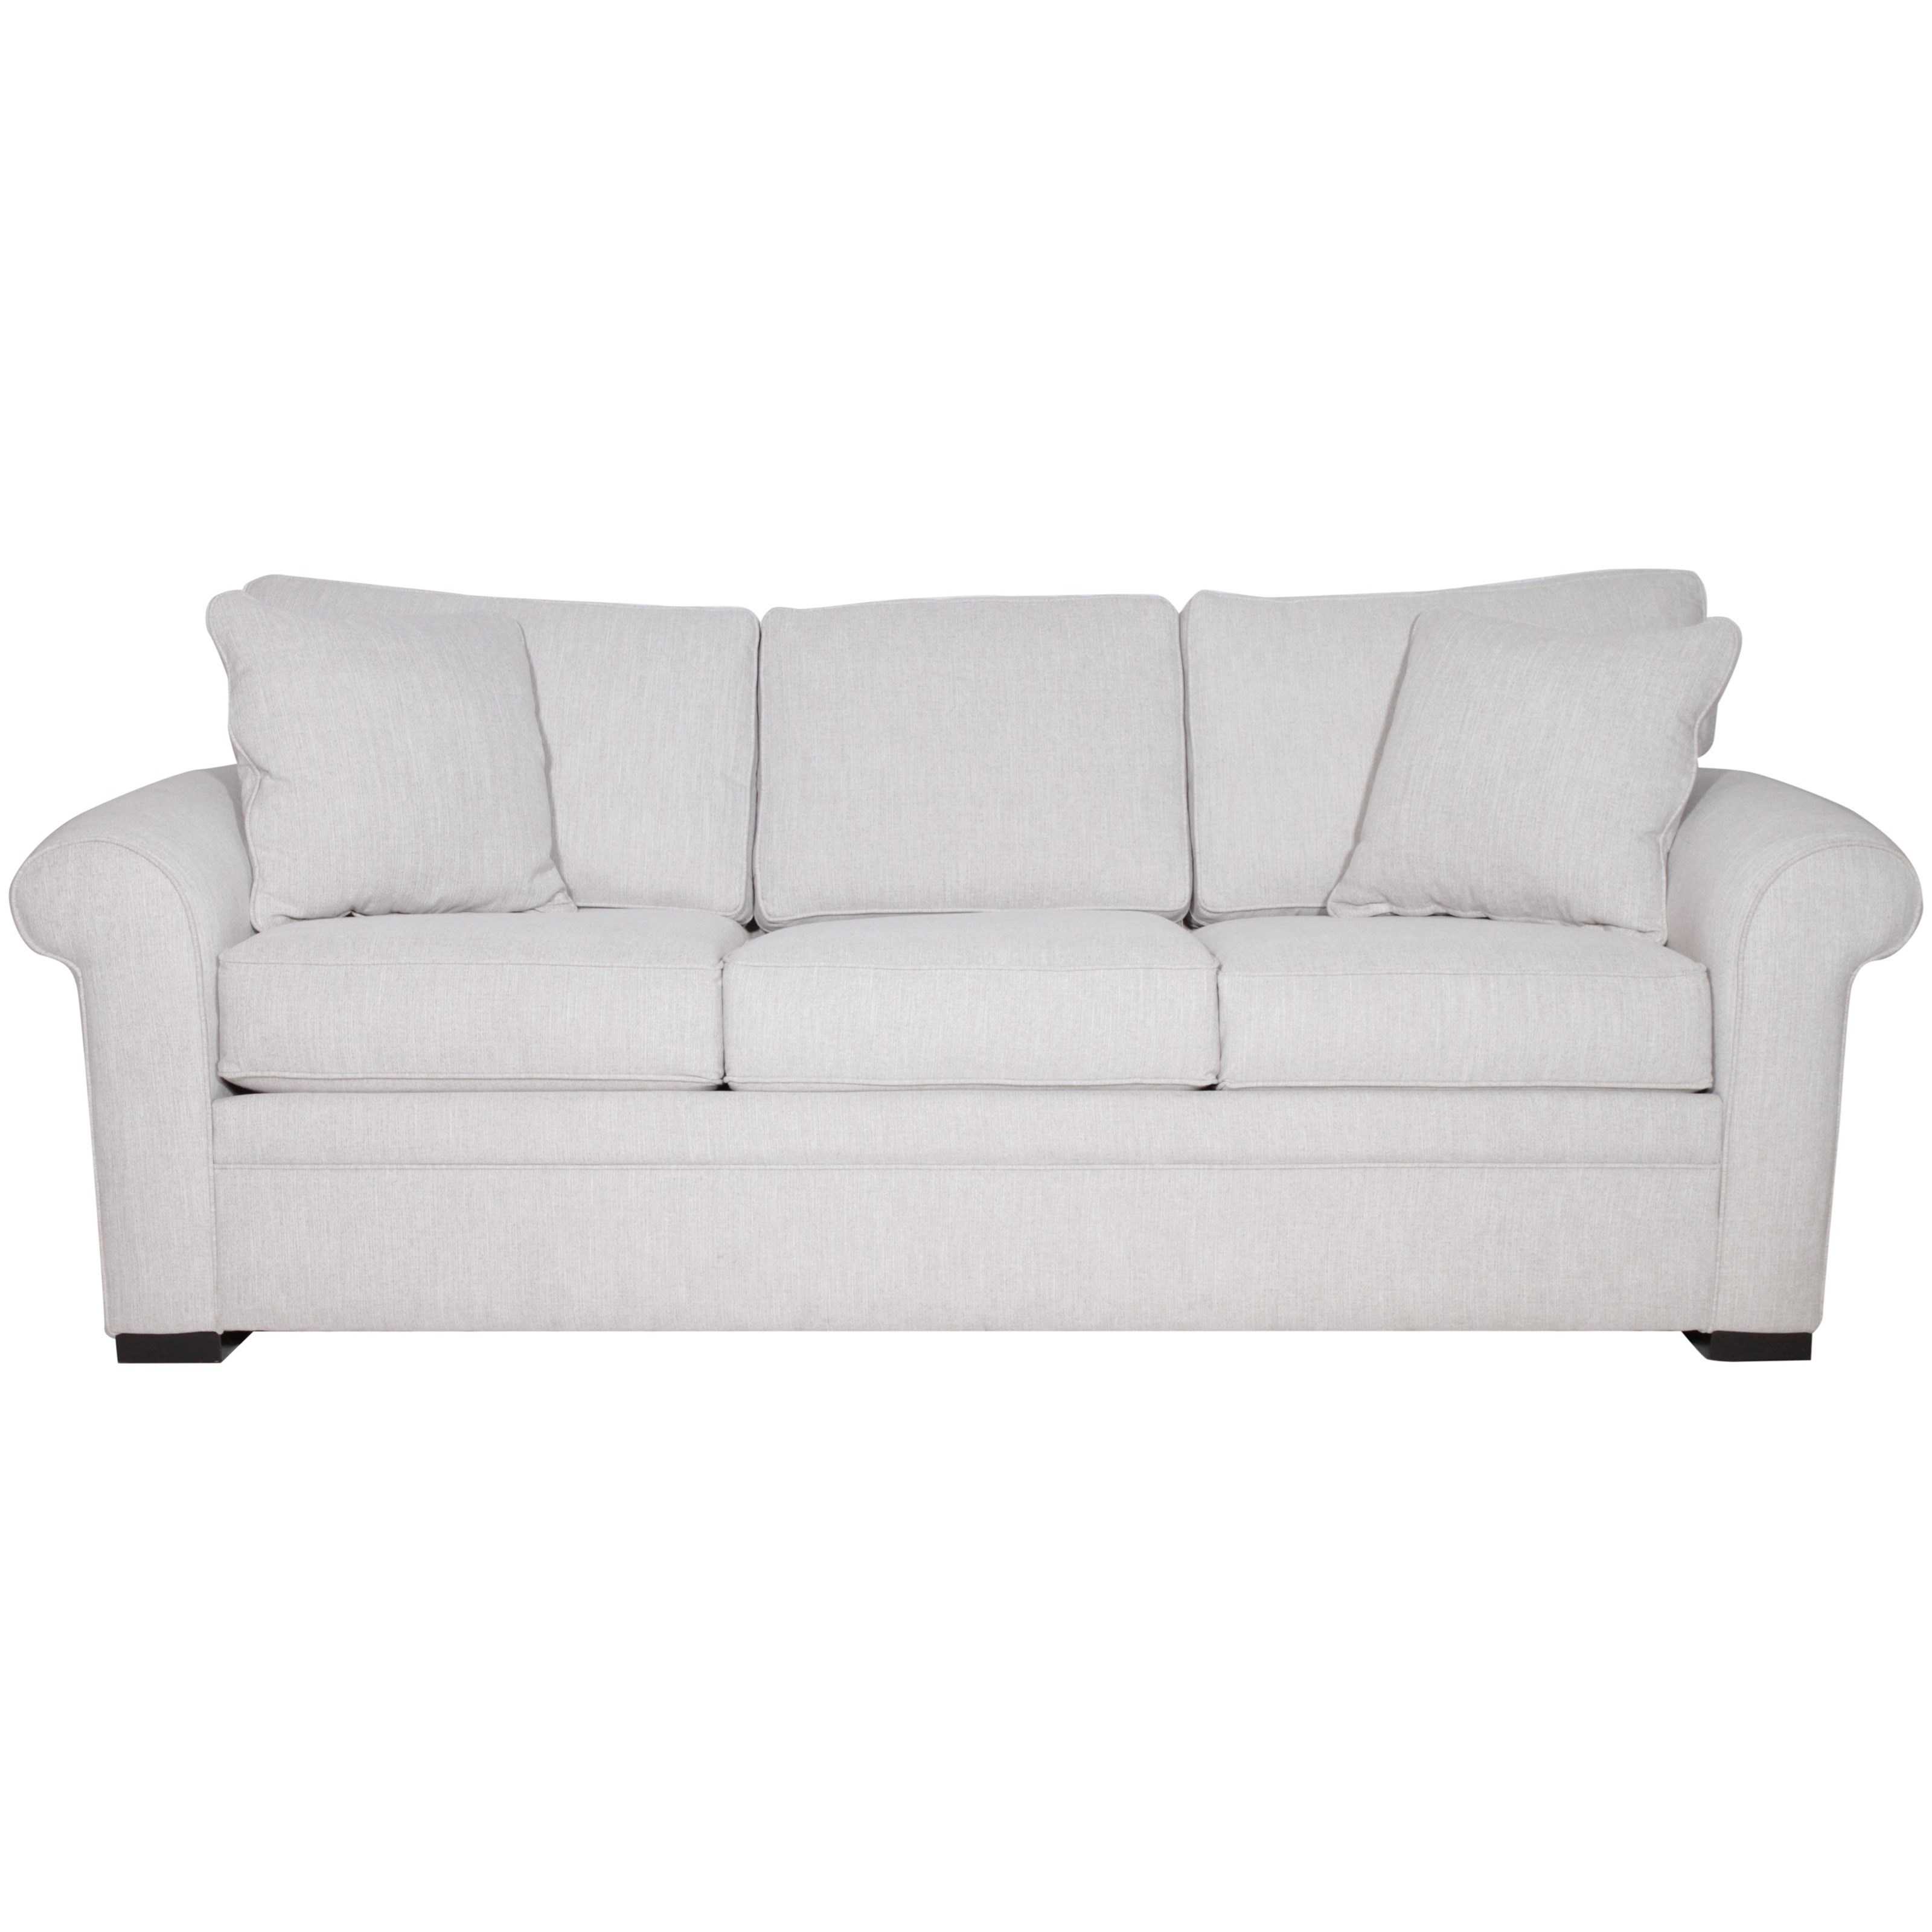 Dozy Transitional Queen Sofa Sleeper